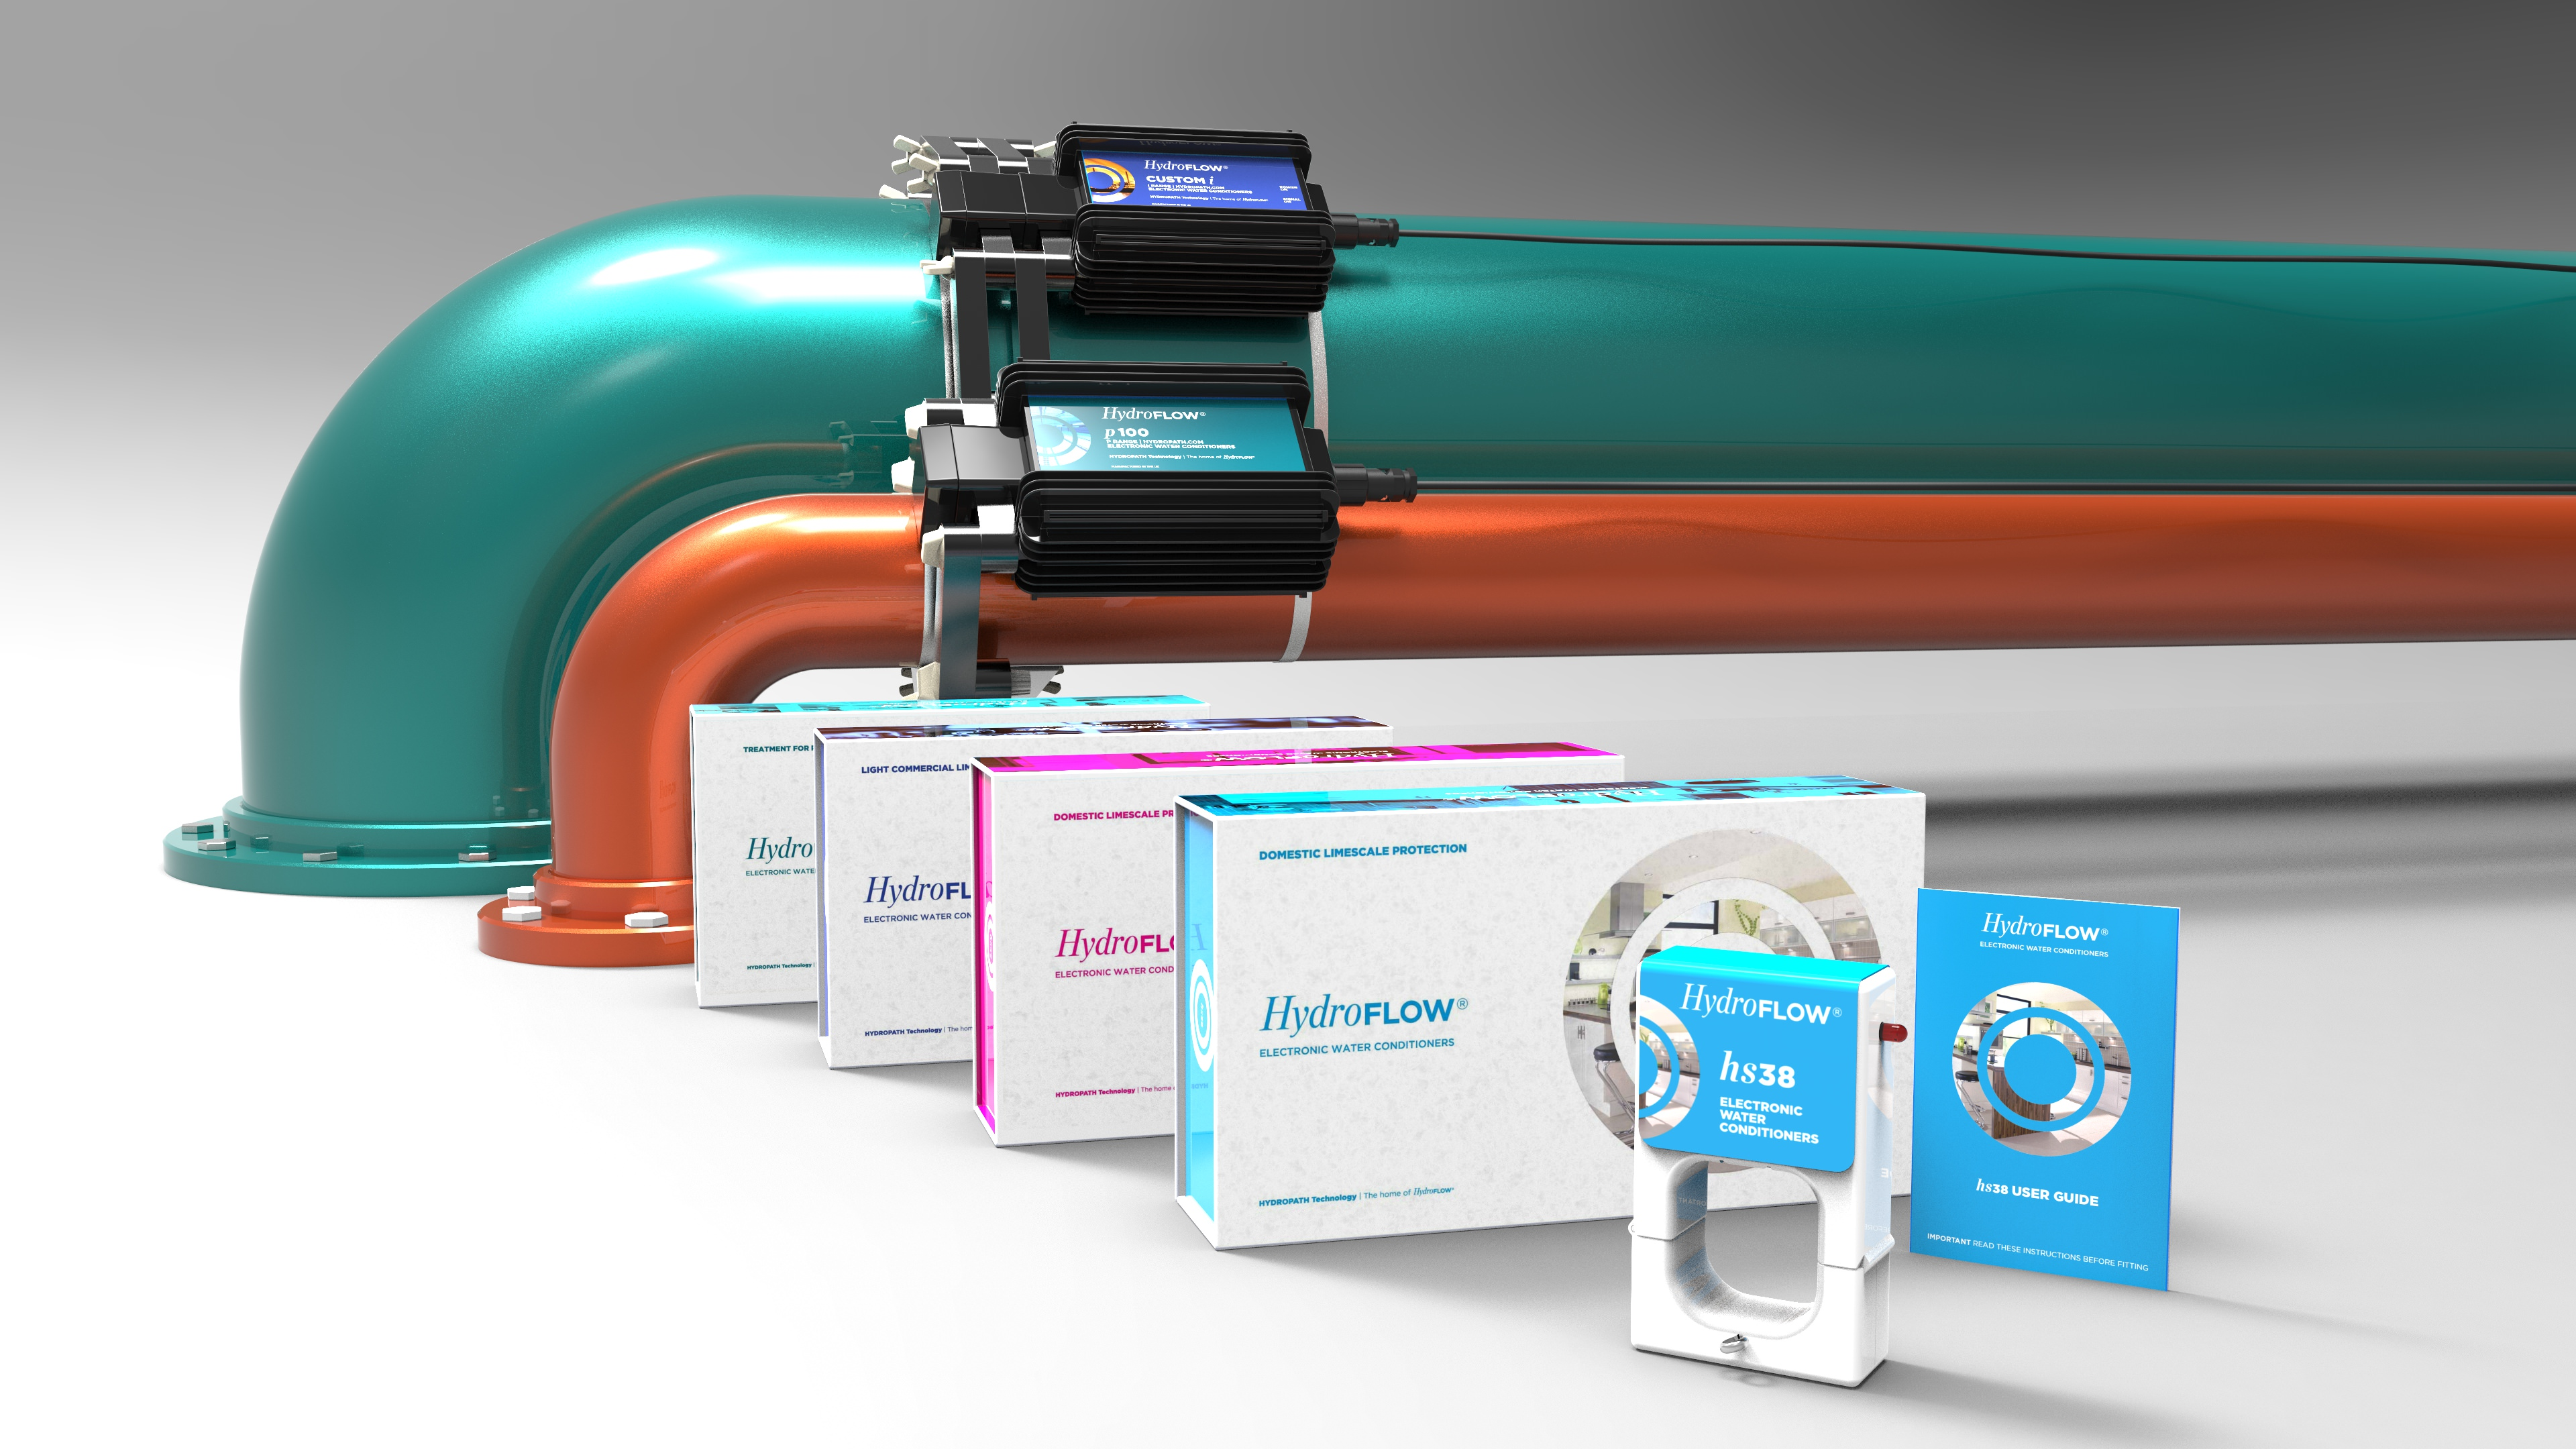 Gallery HydroFLOW Water Conditioners 3